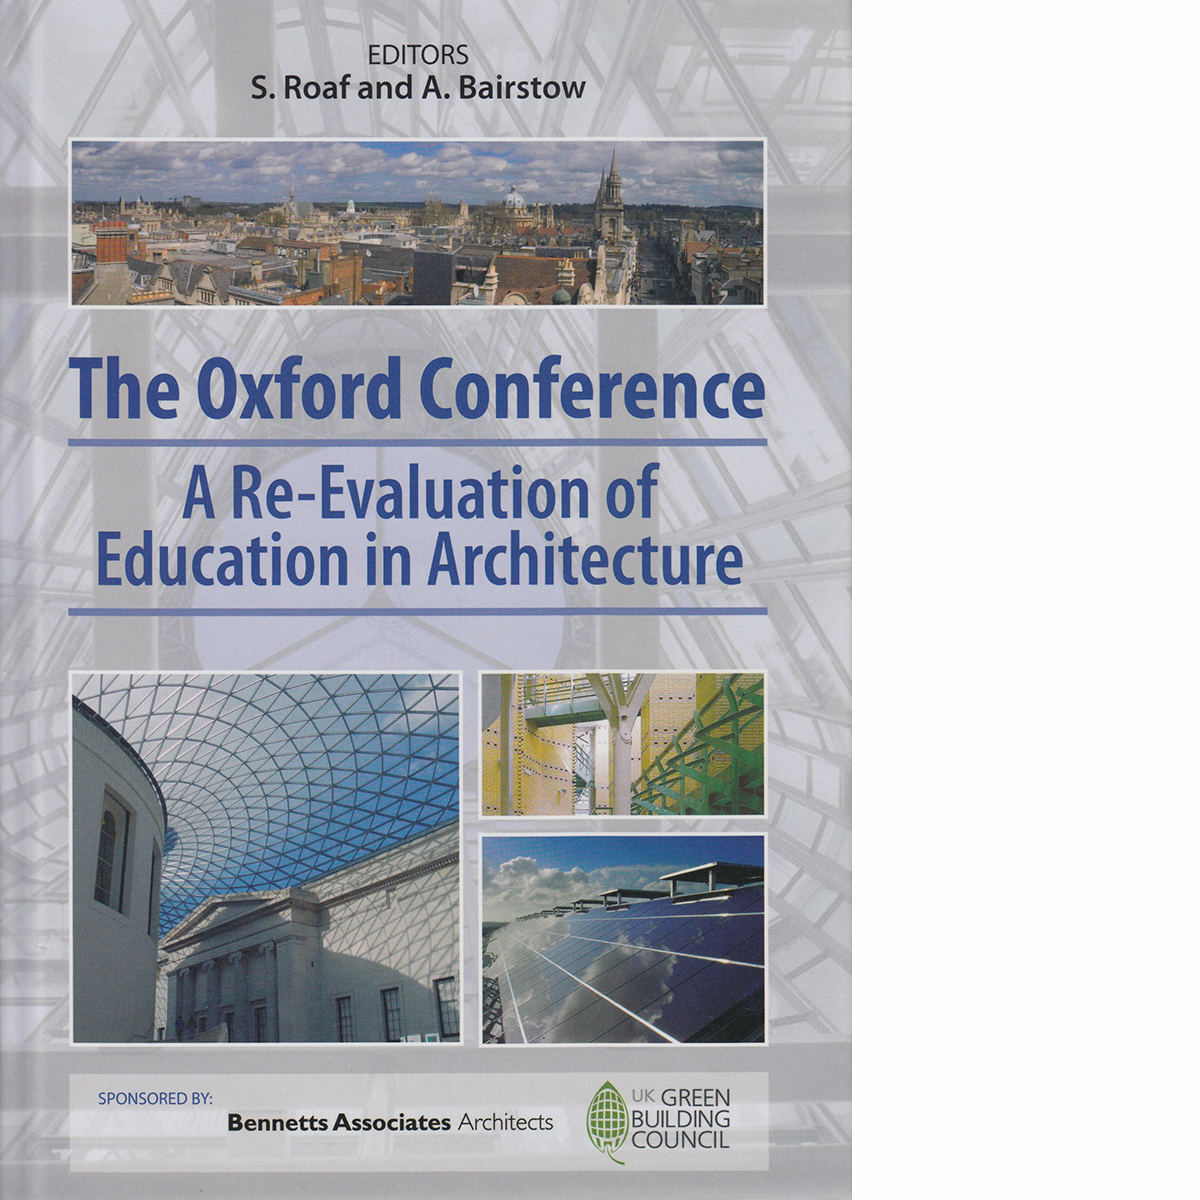 2008-Oxford-Conference-on-Architectural-Education